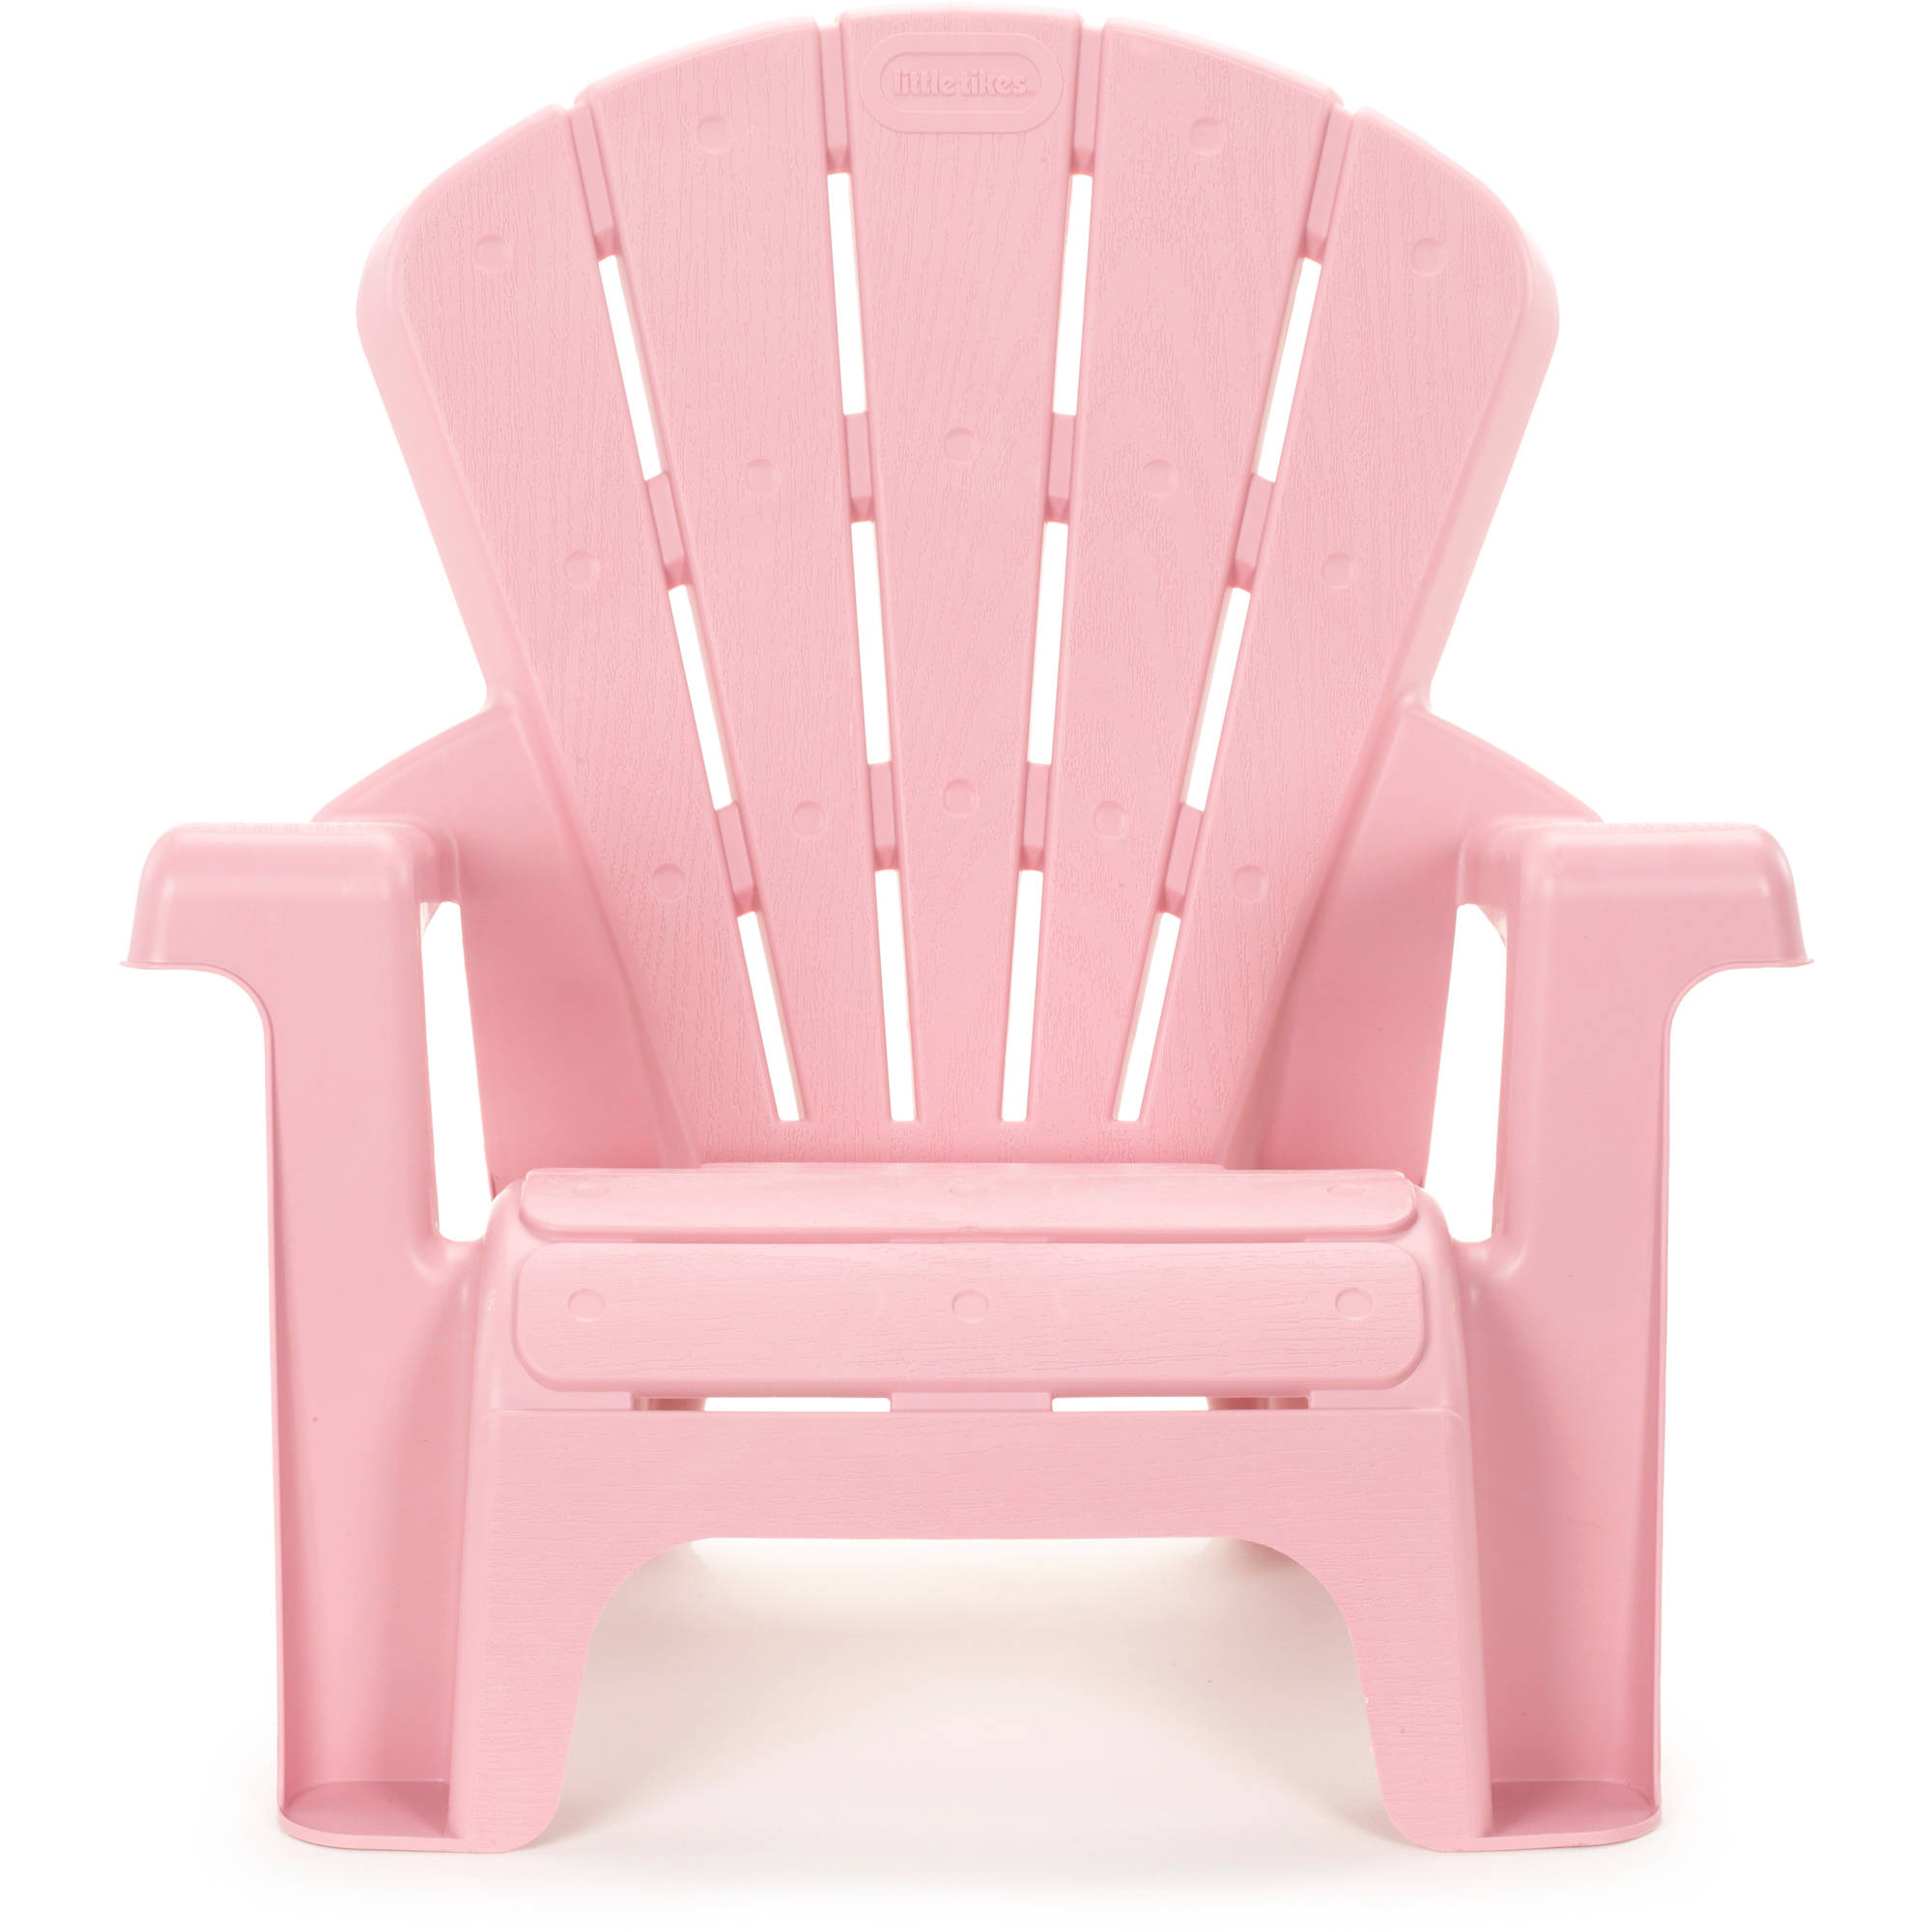 Comfy Chairs For Girls Little Tikes Garden Chair Pink